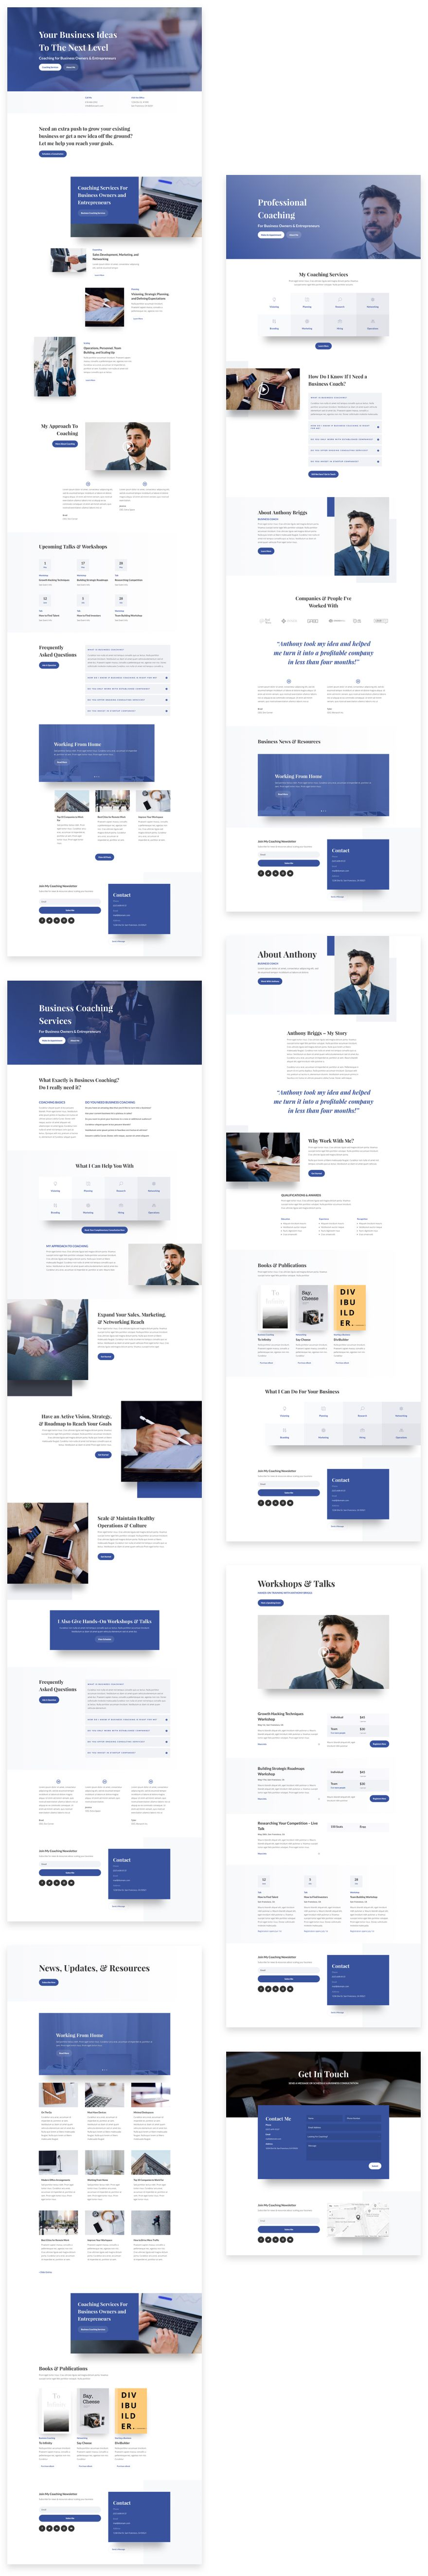 get a free business coach layout pack for divi webdesign layout